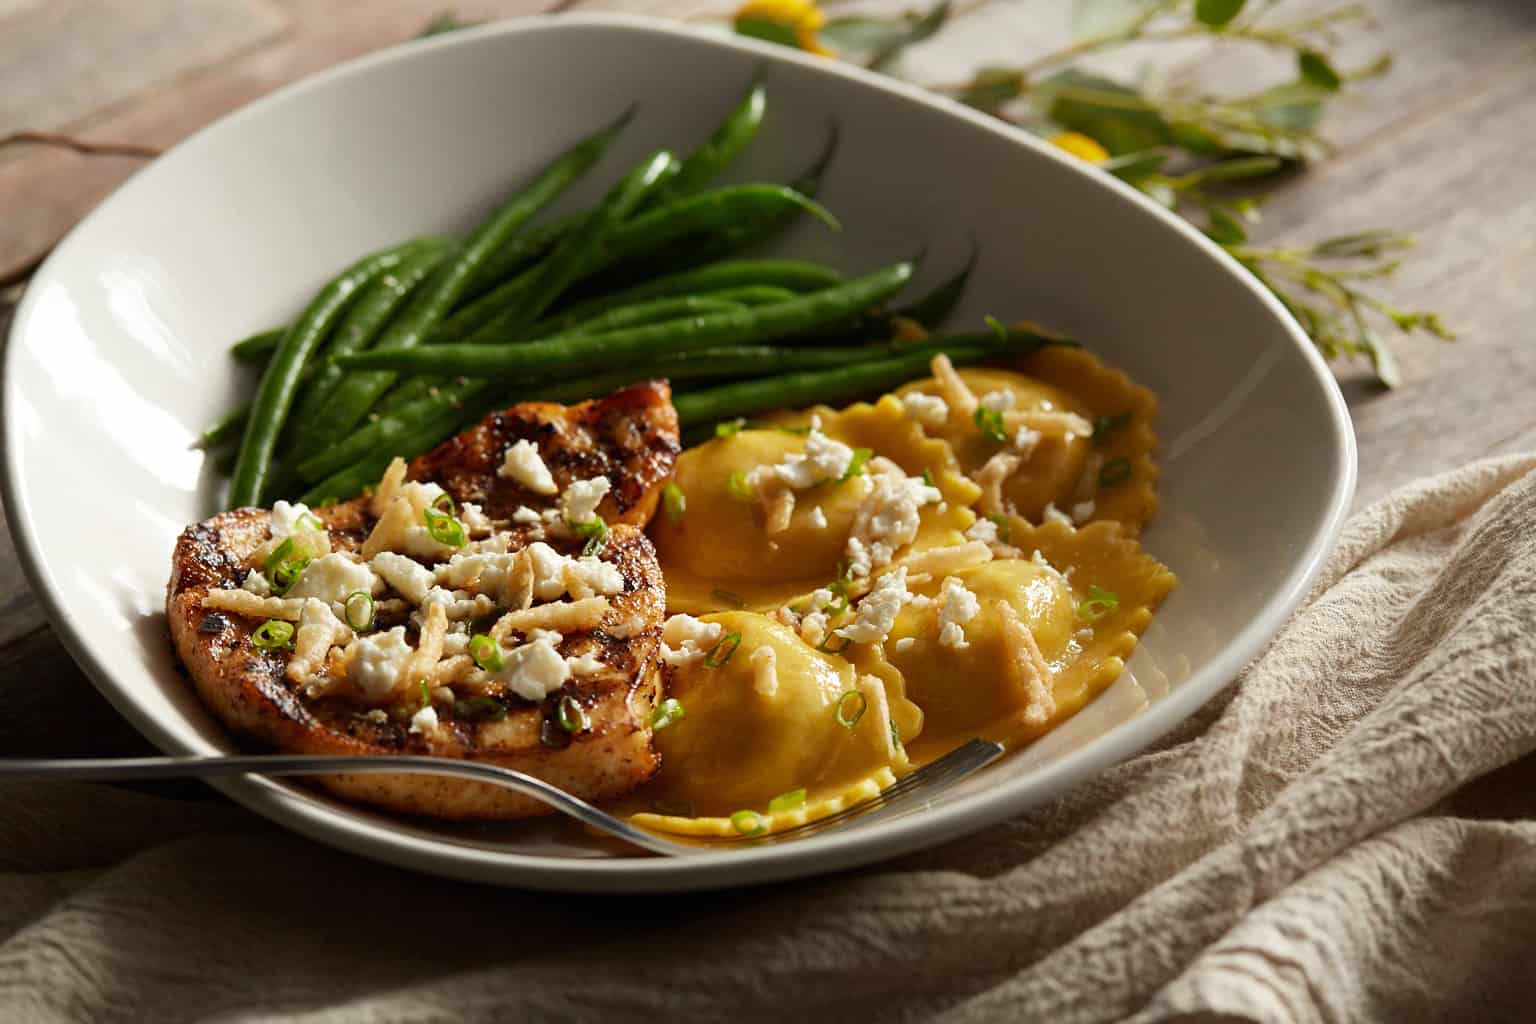 Pumkin Ravioli at Bonefish Grill